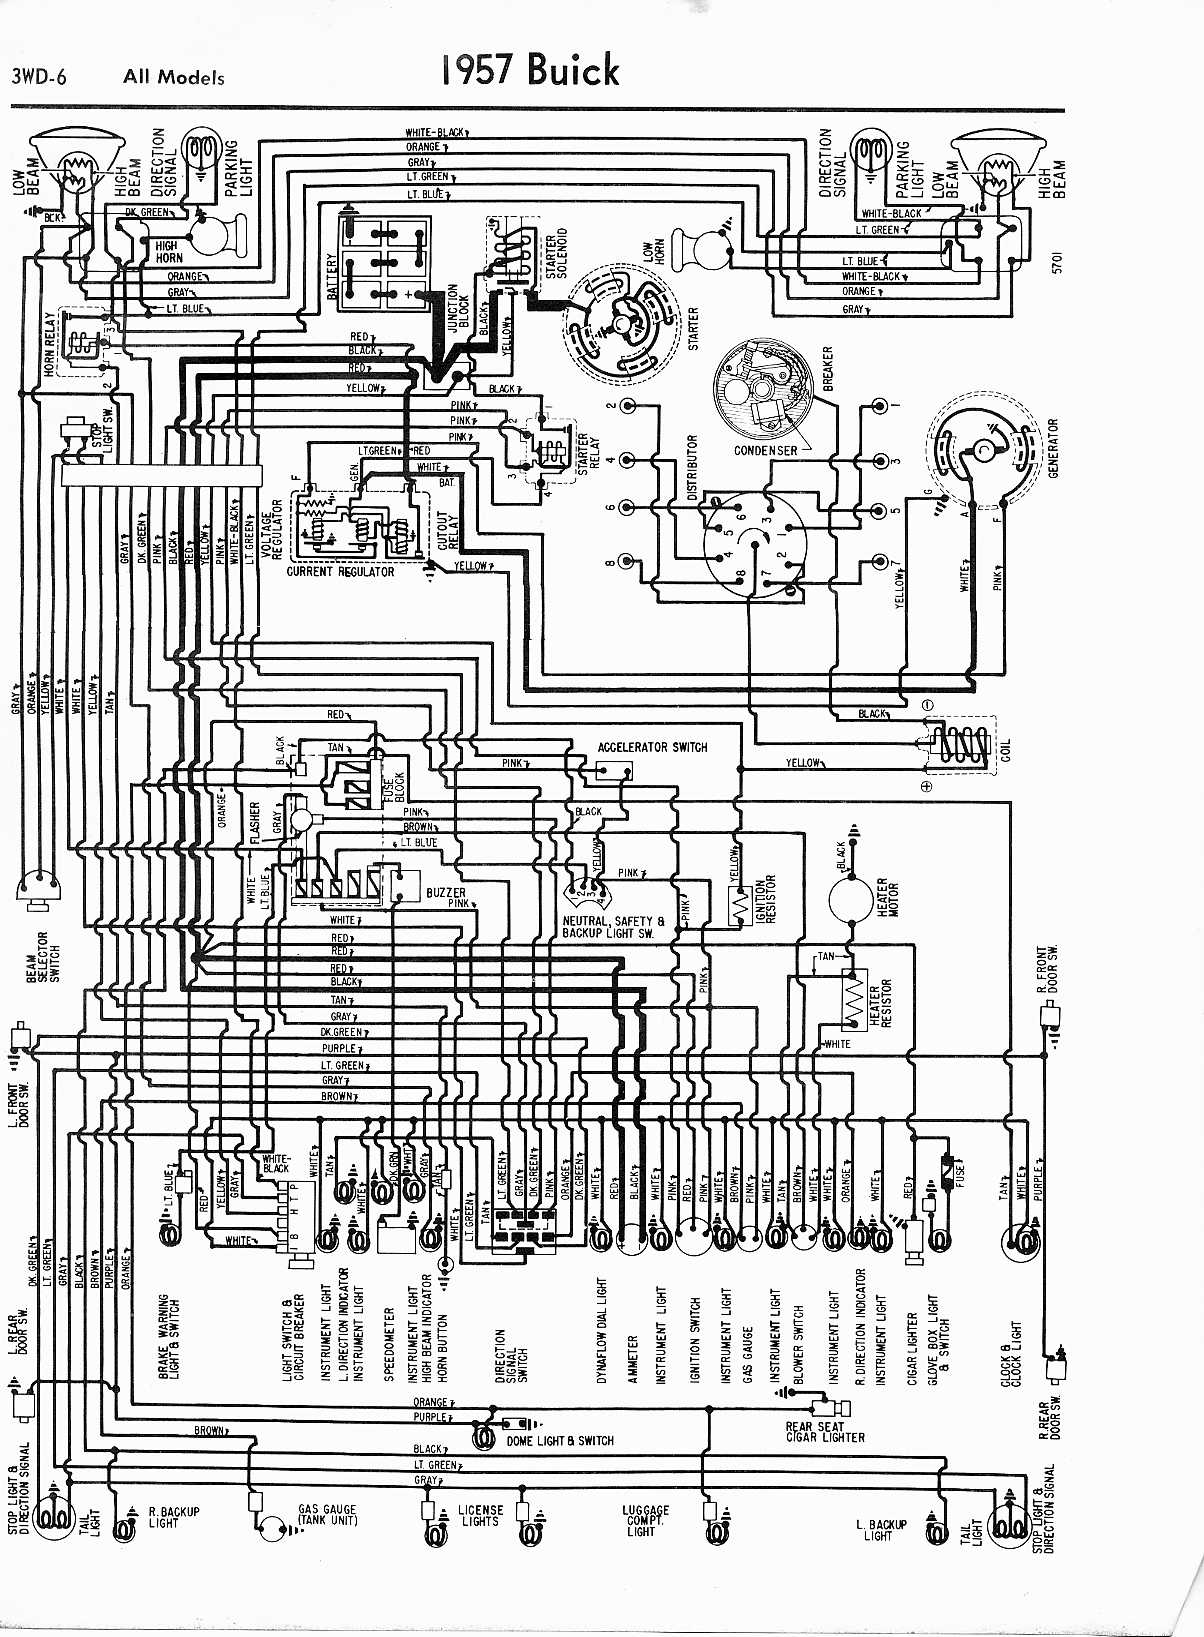 Steering Column Wiring Diagram On 1968 Firebird Gibson Ripper Harness Buick Diagrams 1957 1965 Rh Oldcarmanualproject Com